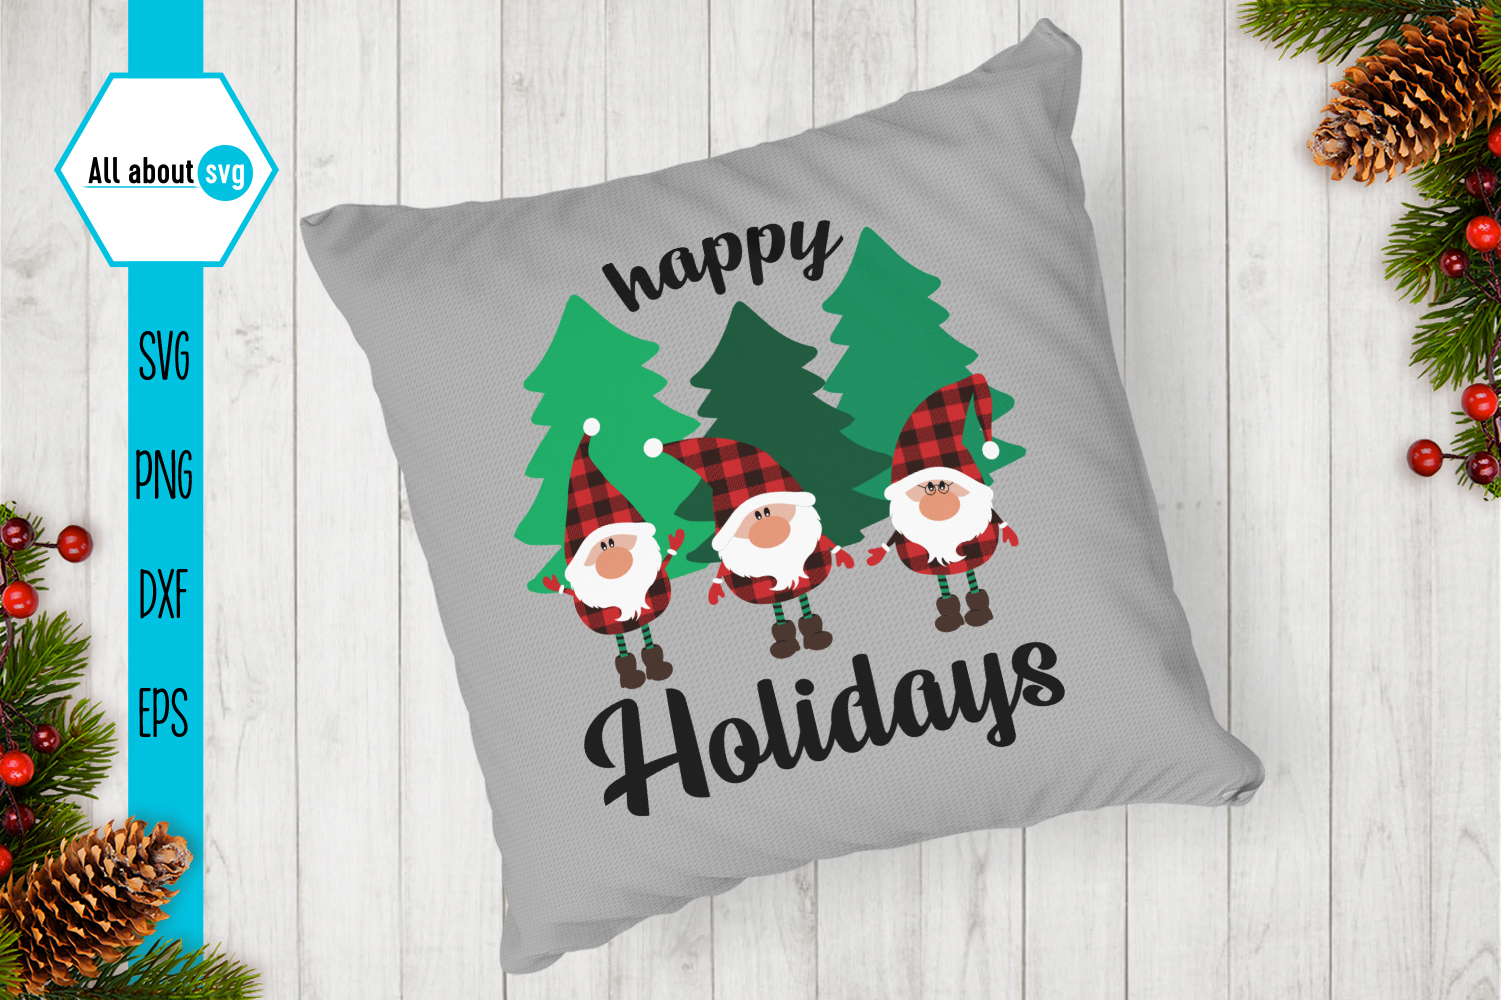 Happy Holidays Svg, Gnomies Buffalo Plaid Svg example image 5